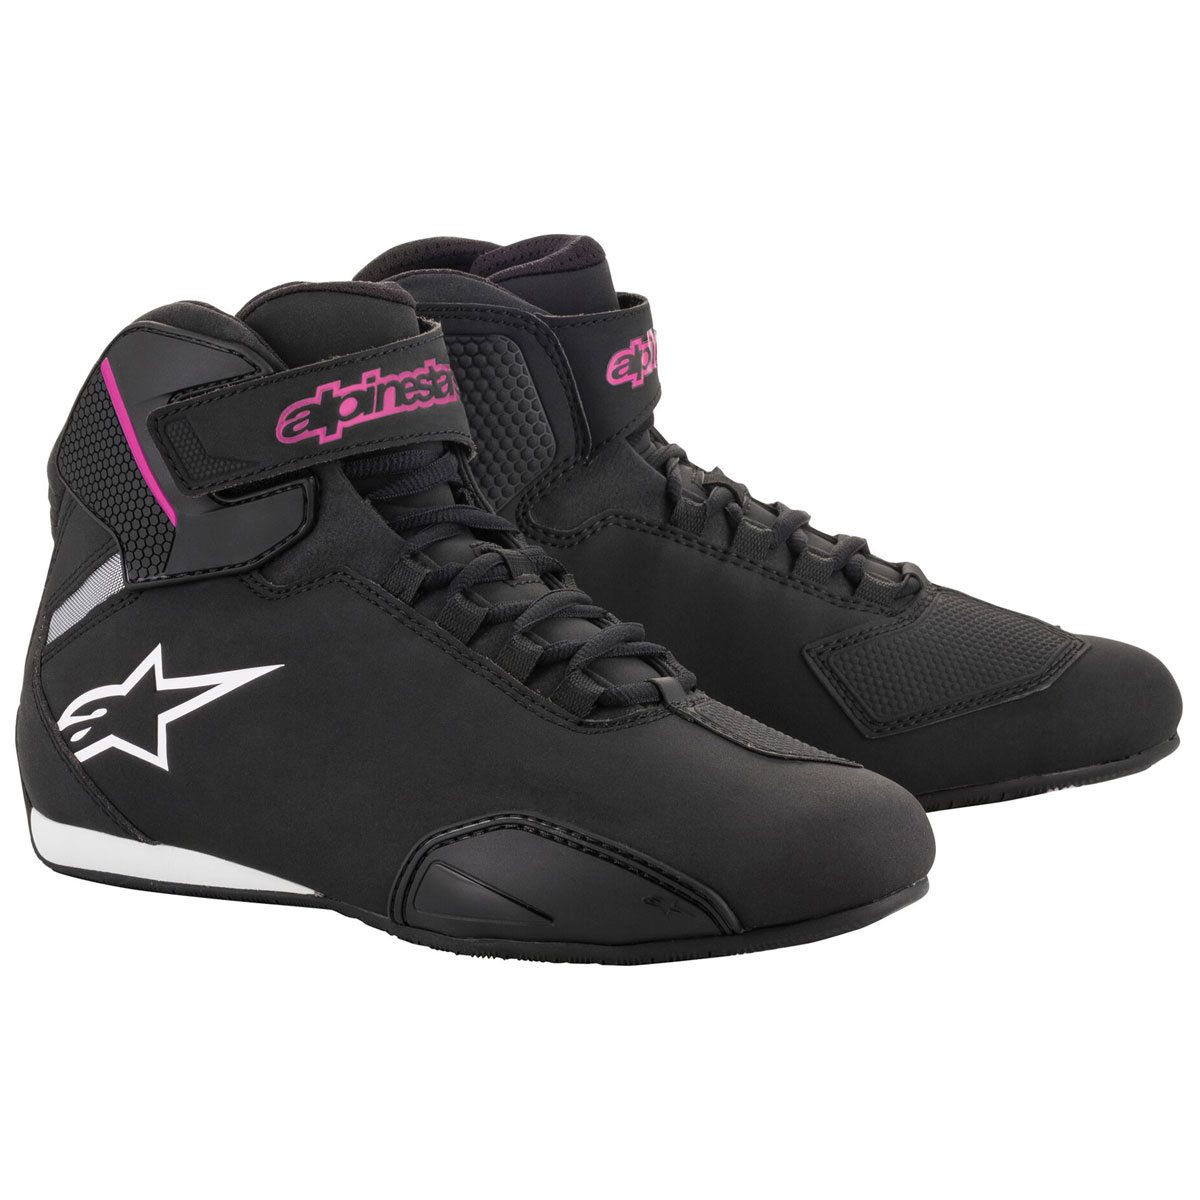 Alpinestars Women's Stella Secktor Black/Pink Riding Shoes